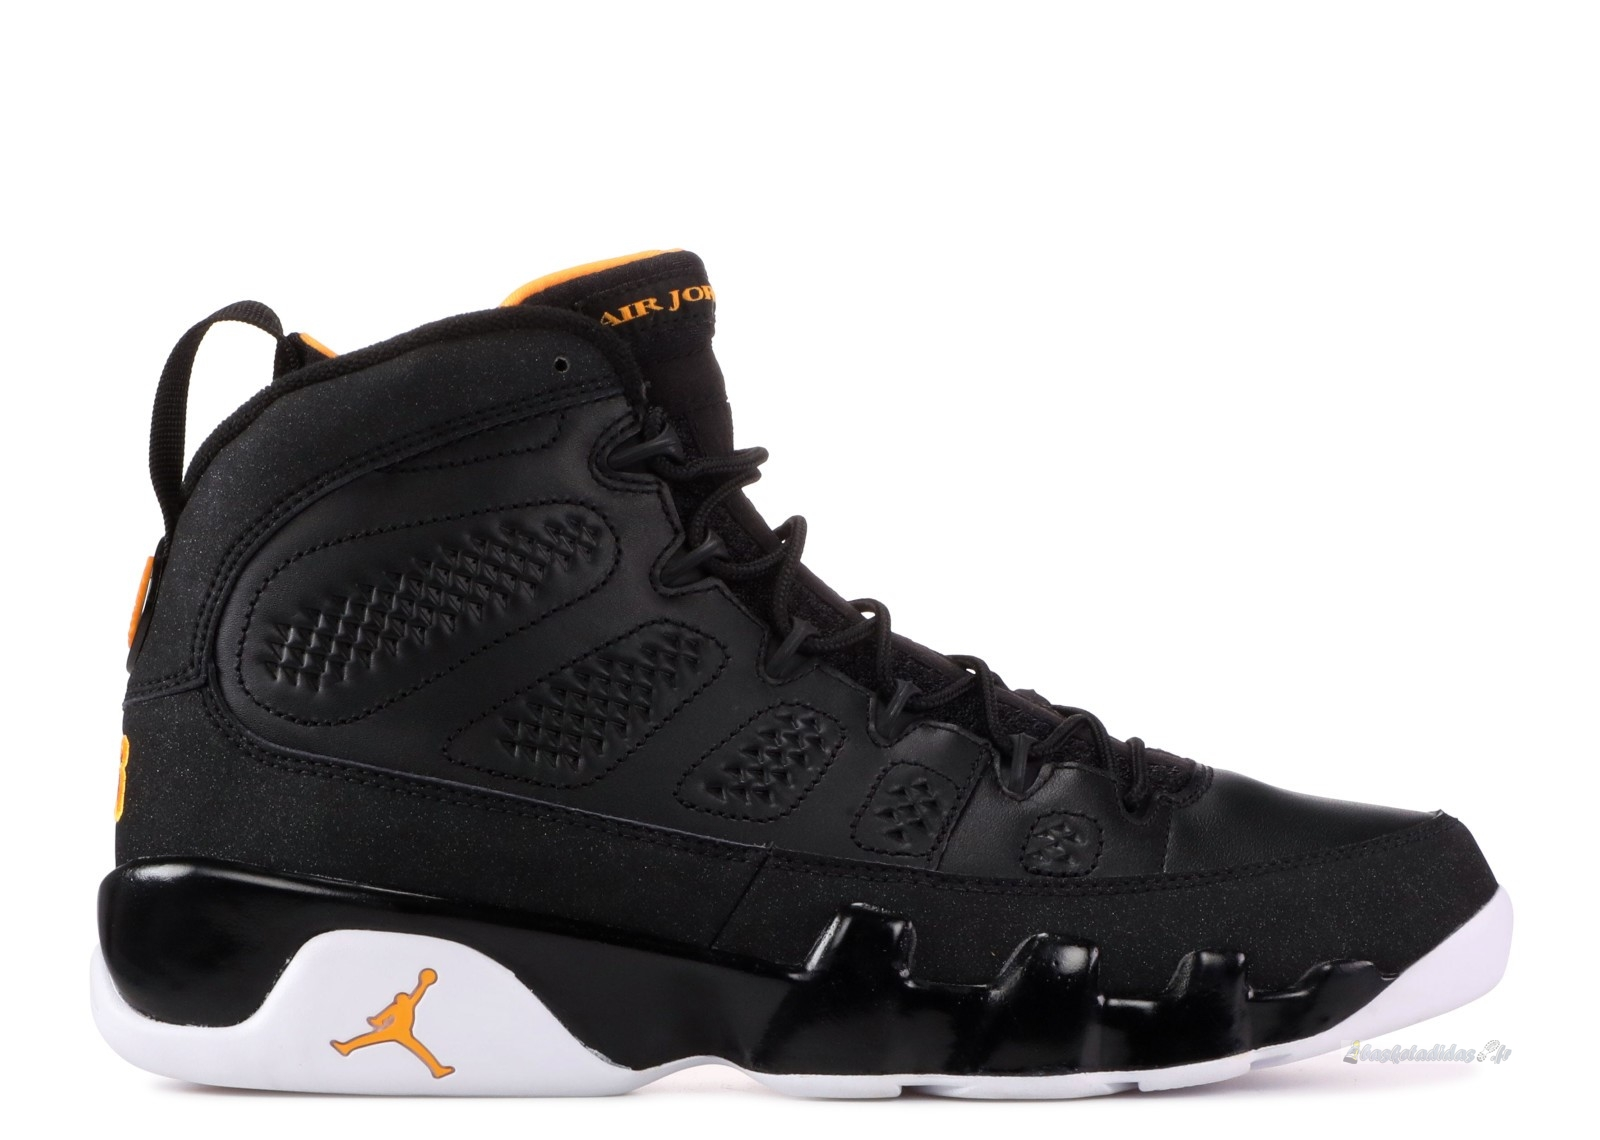 Chaussure de Basket Air Jordan 9 Retro Noir Blanc Orange (302370-004)